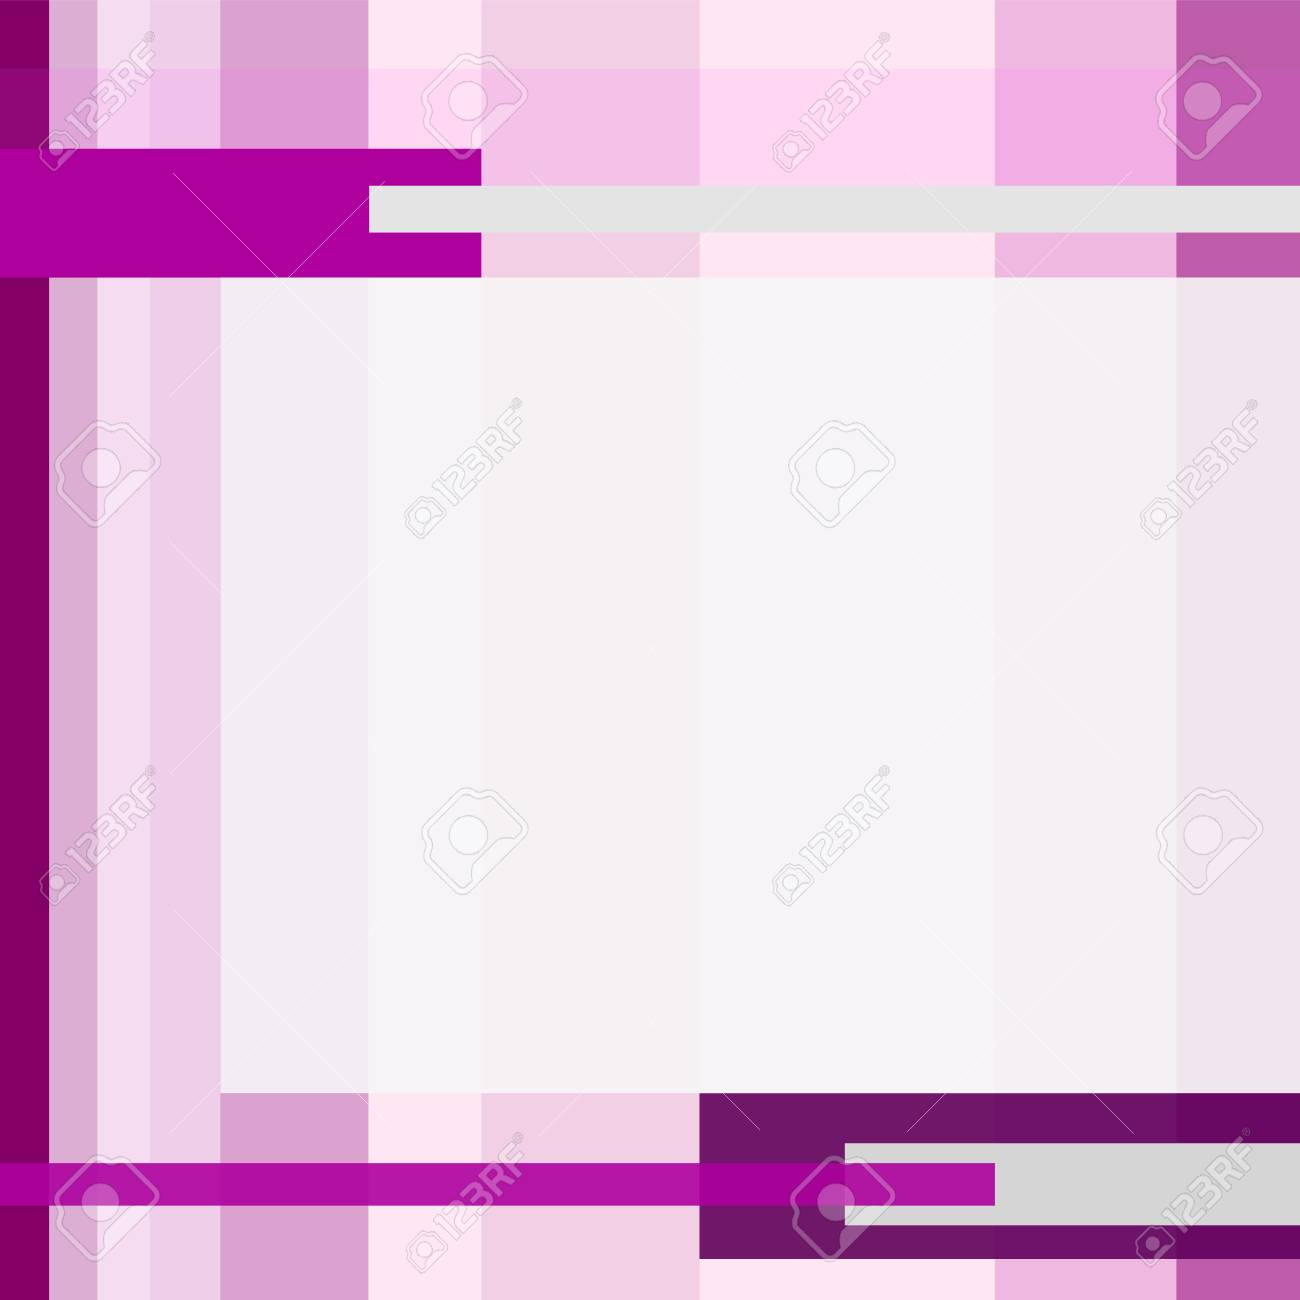 geometric flat template with light text box abstract pattern